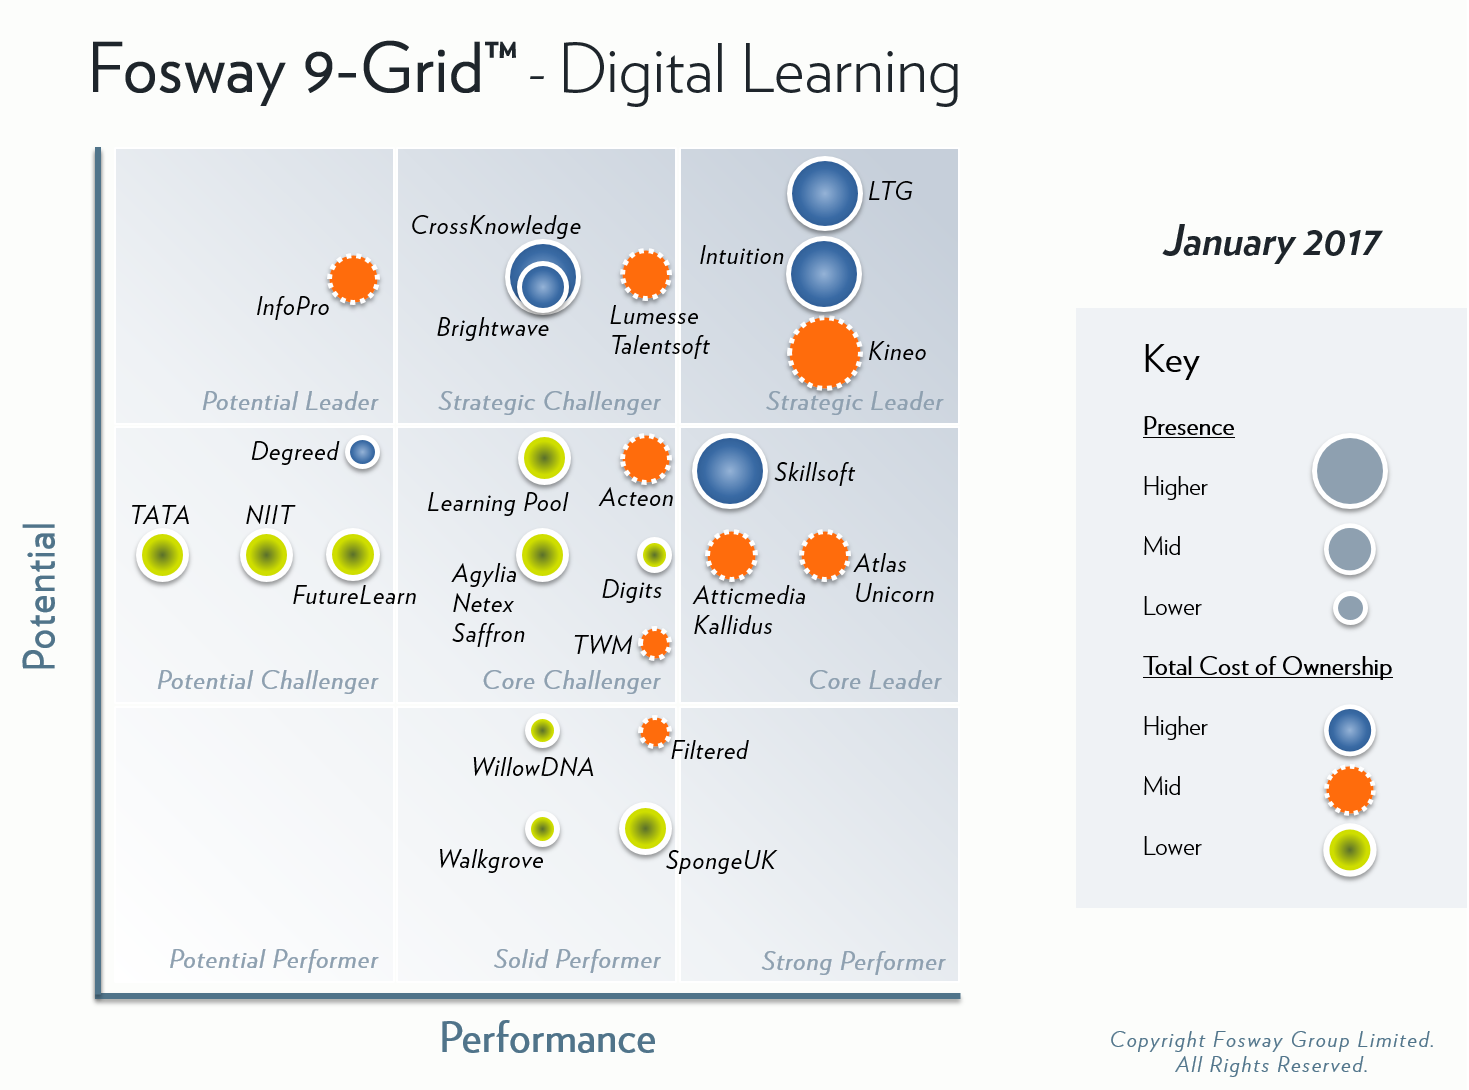 Fosway 9-Grid Digital Learning 2017